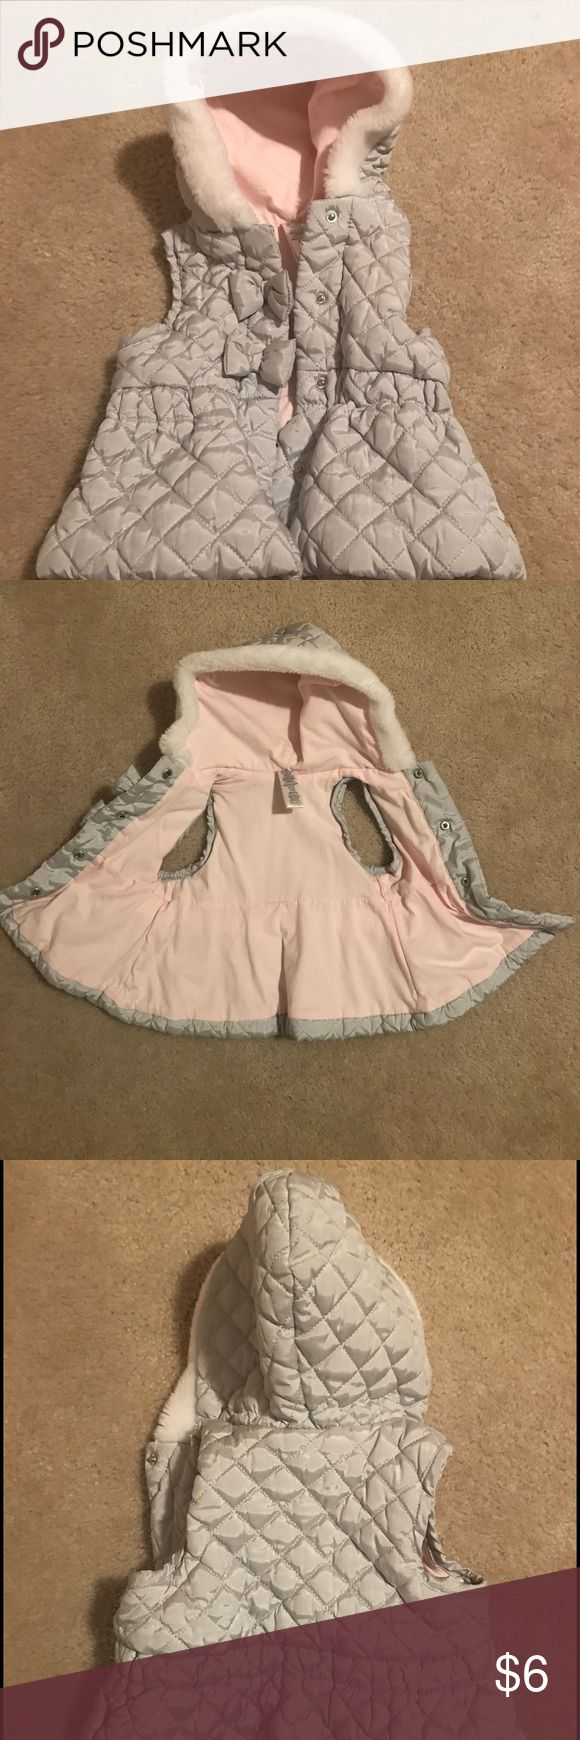 Silver Vest trimmed with bows and faux fur trim Silver Vest trimmed with bows and faux fur trimmed hood! Inside is lined in pink. Perfect for fall with easy transition to the winter season. Great for layering! Just a great piece for your little one! Jackets & Coats Vests